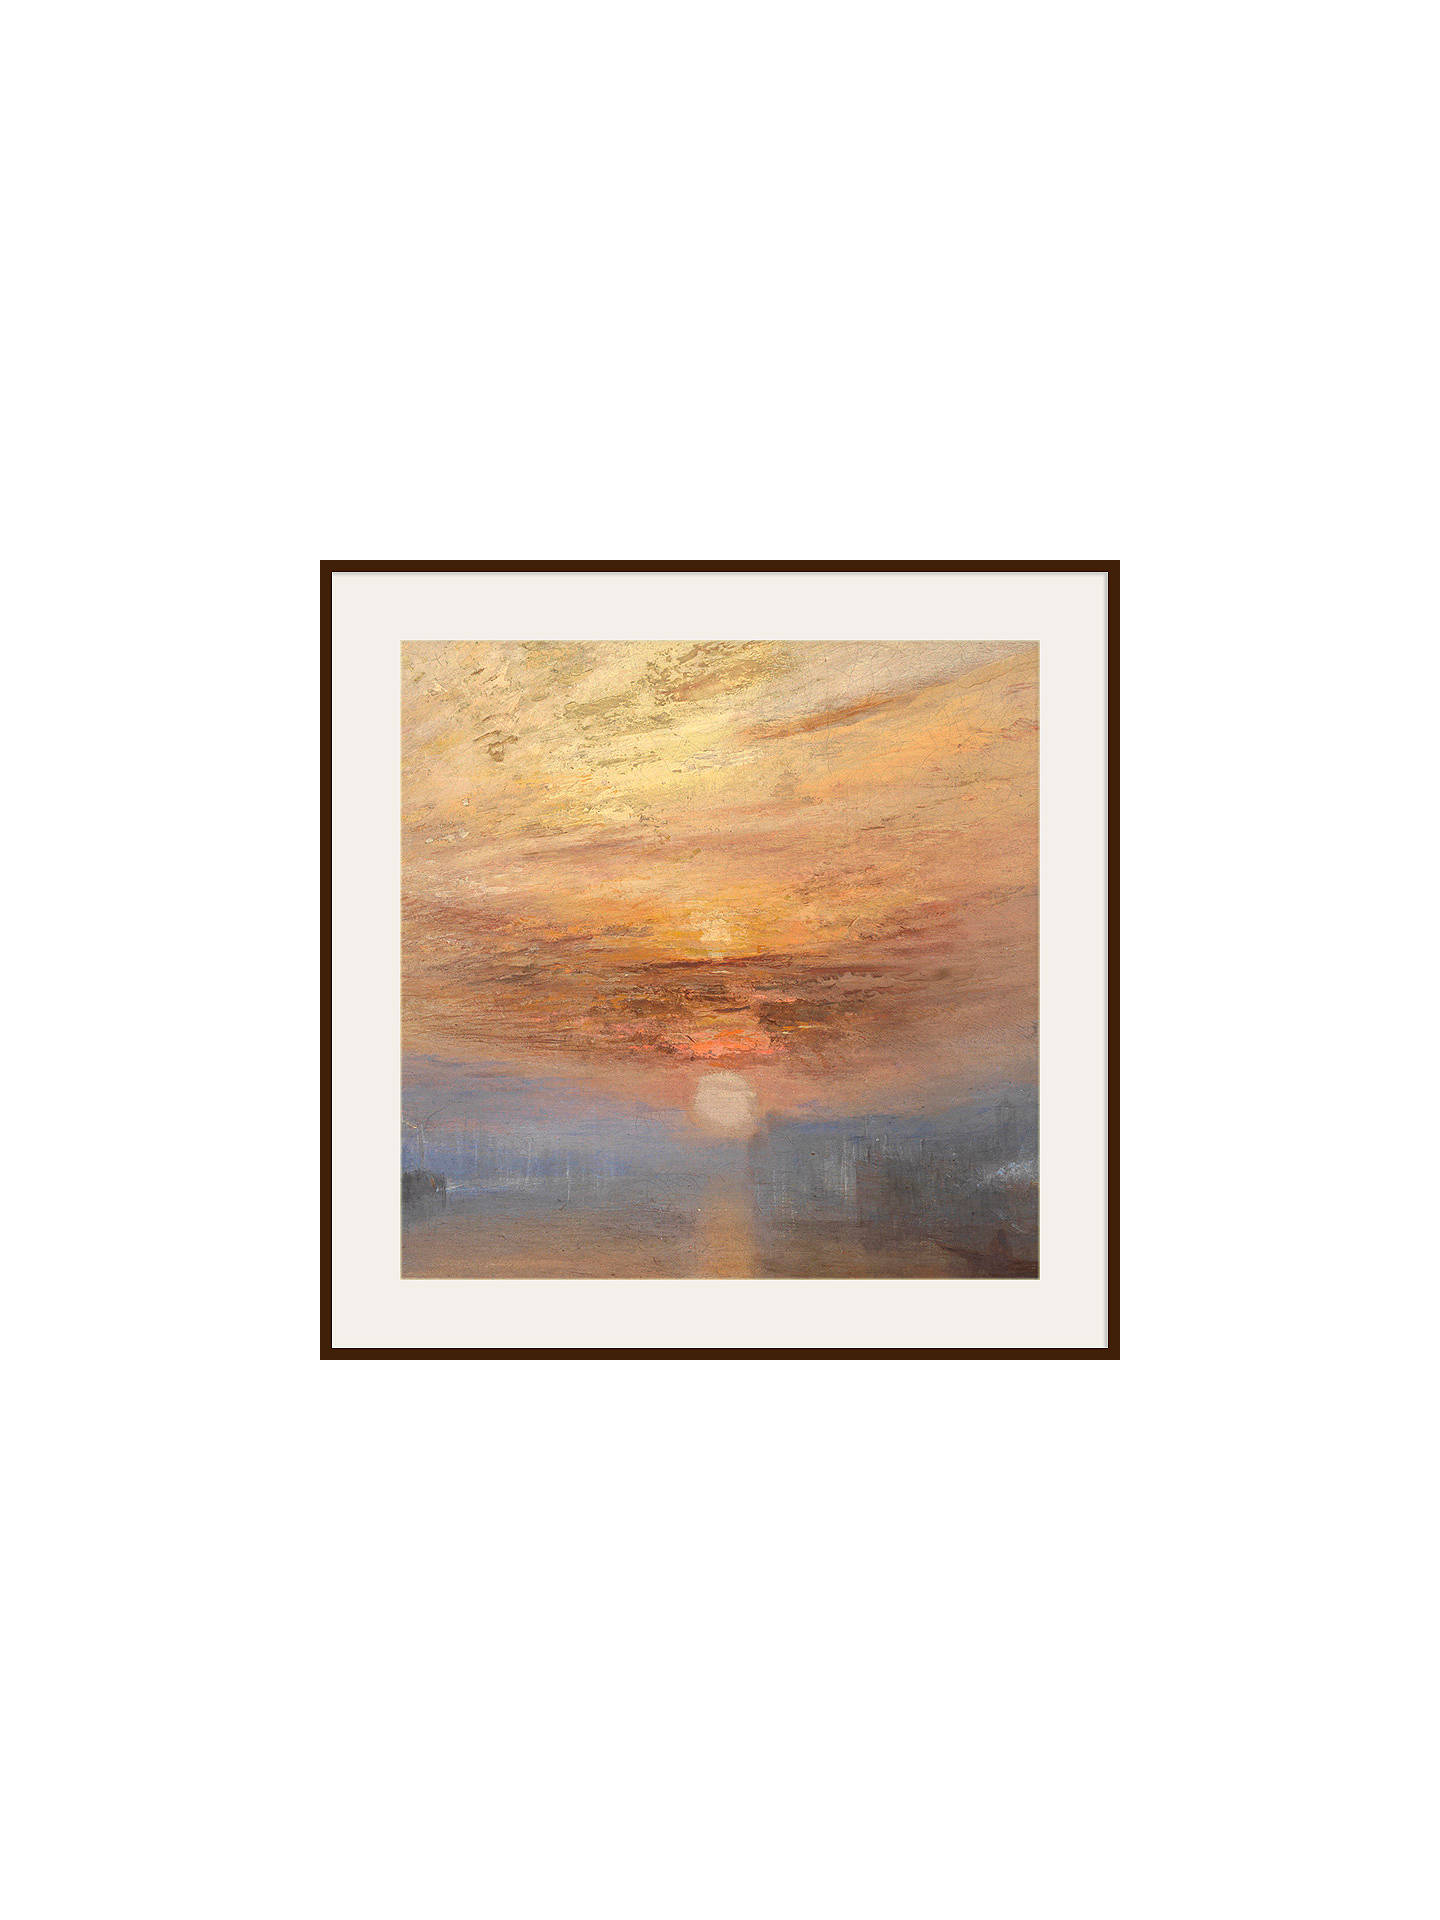 BuyJoseph Mallord William Turner - The Fighting Temeraire 1, Dark Brown Framed Print, 90 x 90cm Online at johnlewis.com